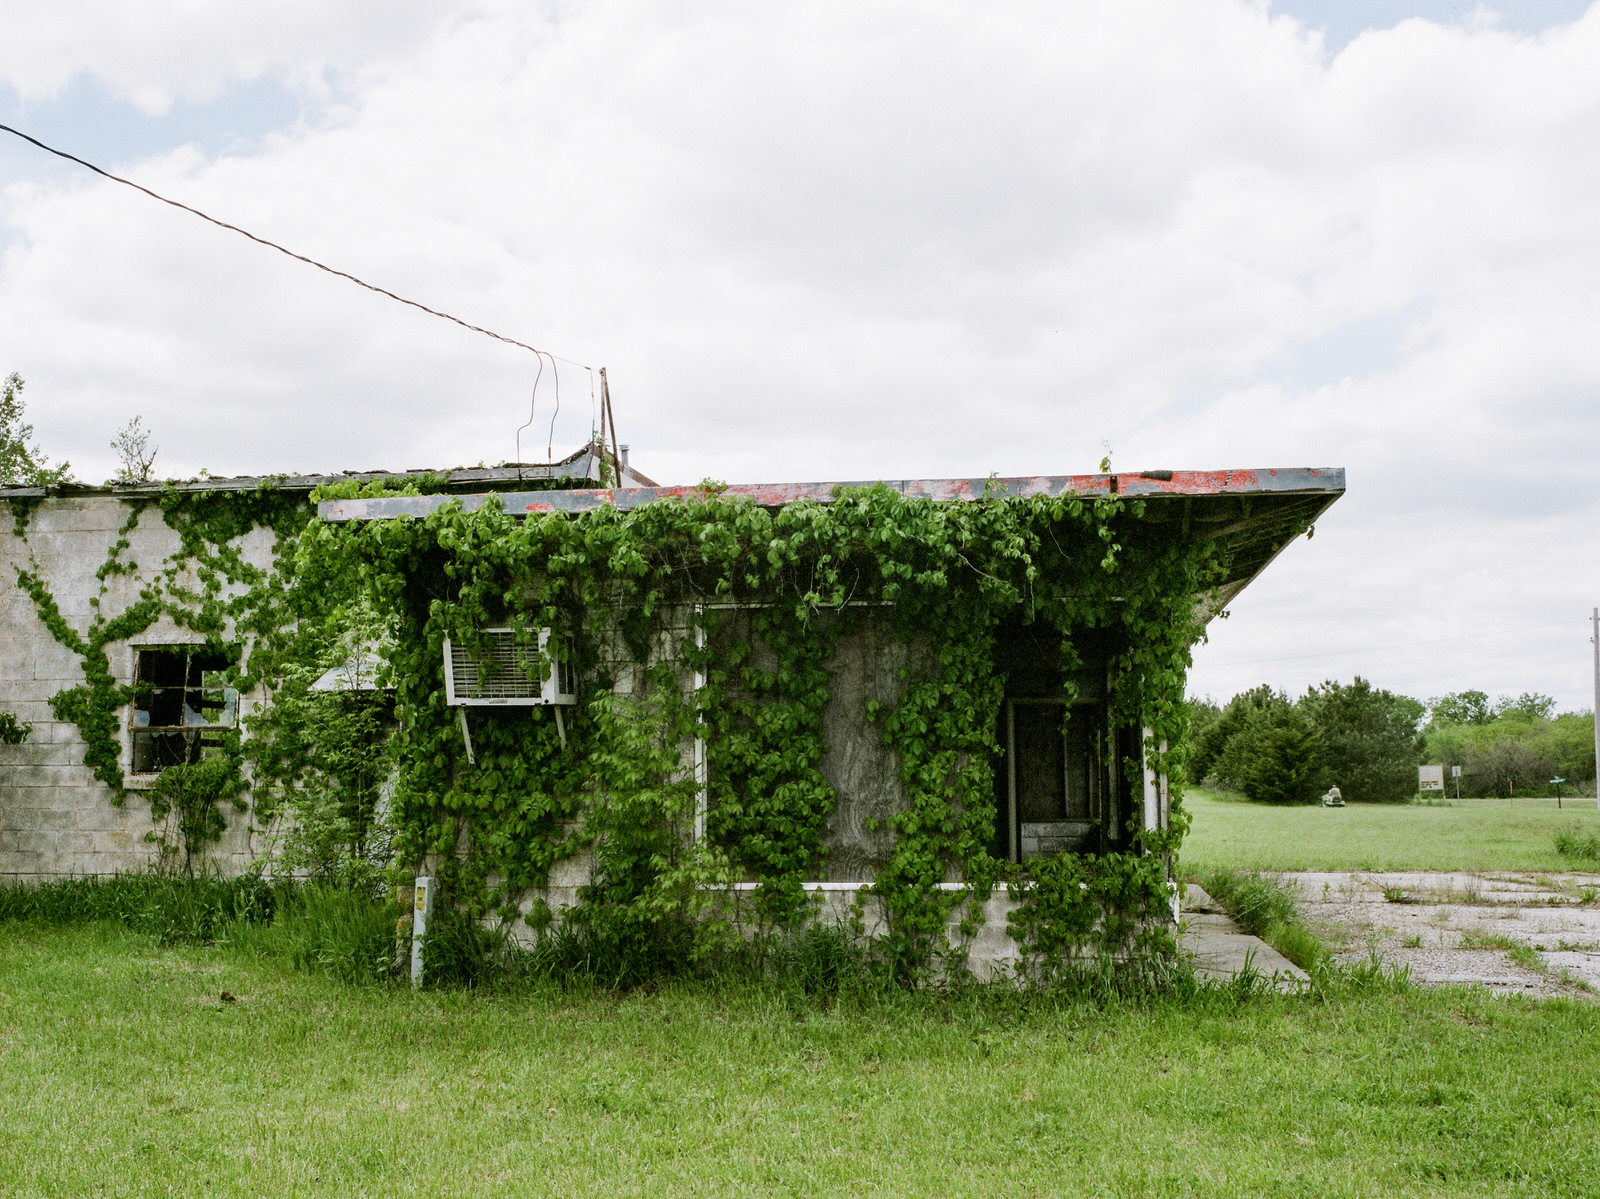 The overgrown vines on the abandon buildings were rich with flavor and feels.